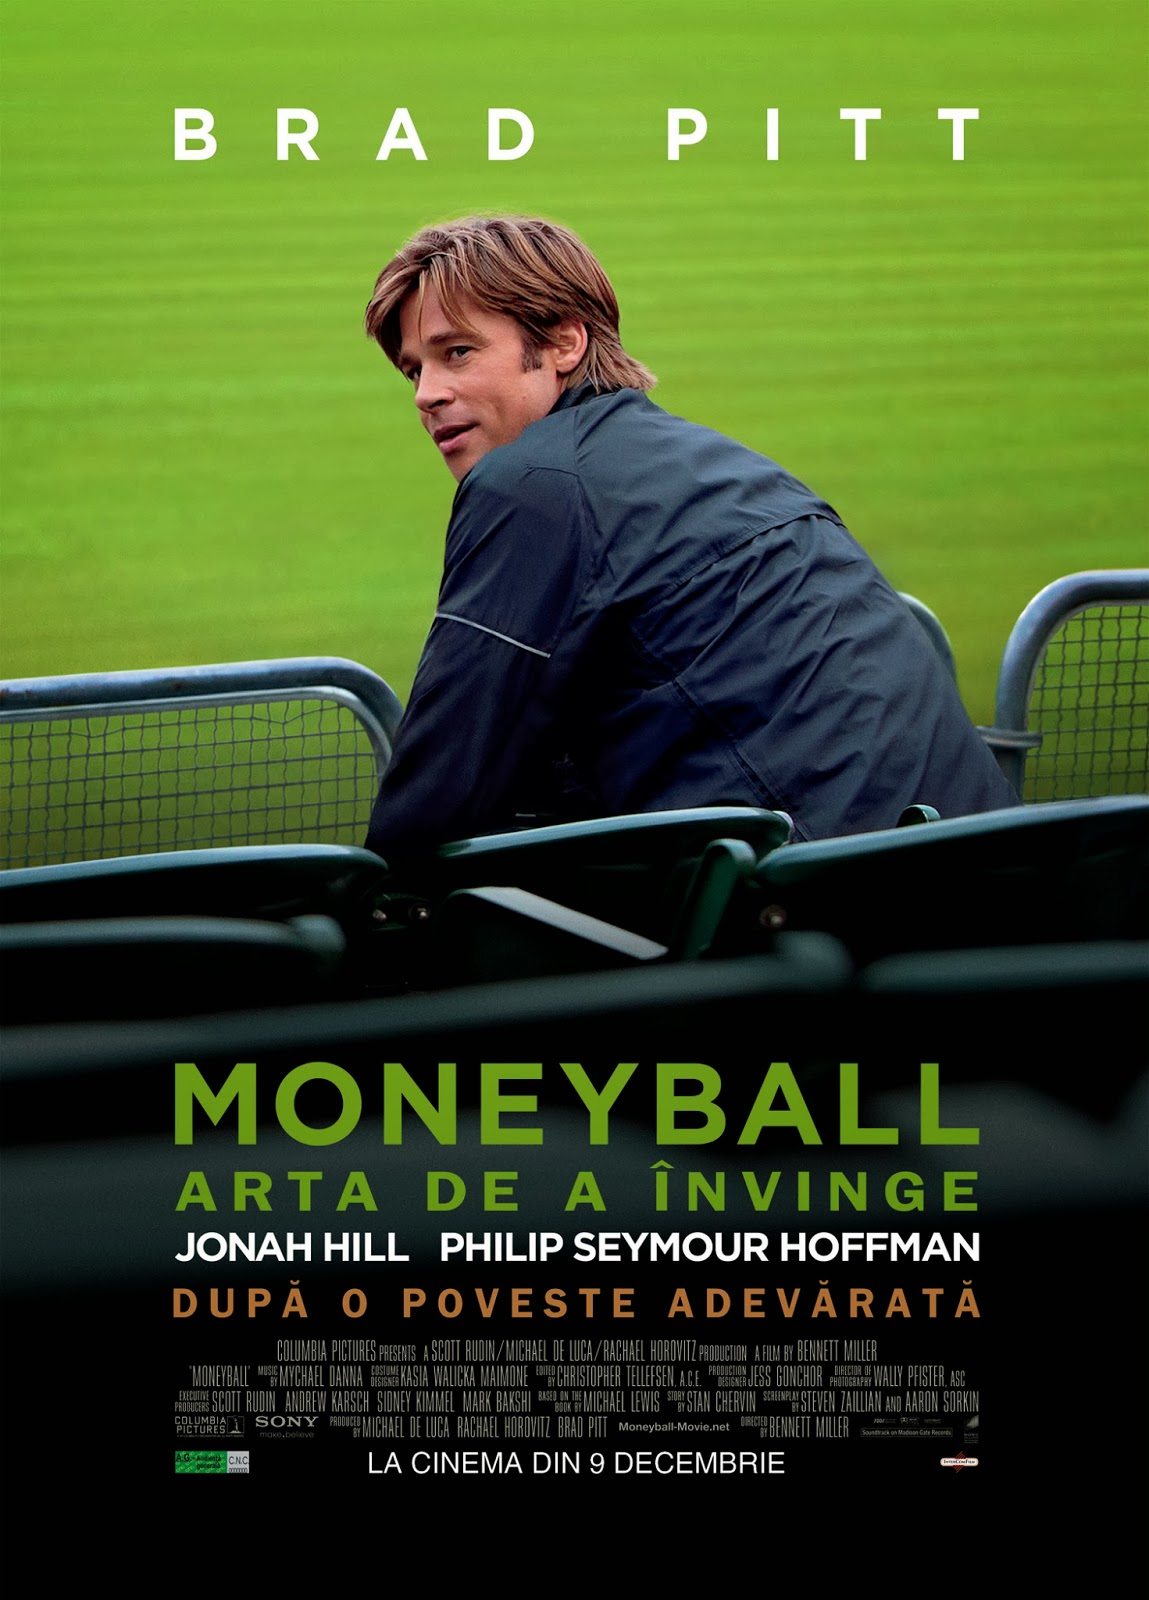 moneyball arta de a invinge